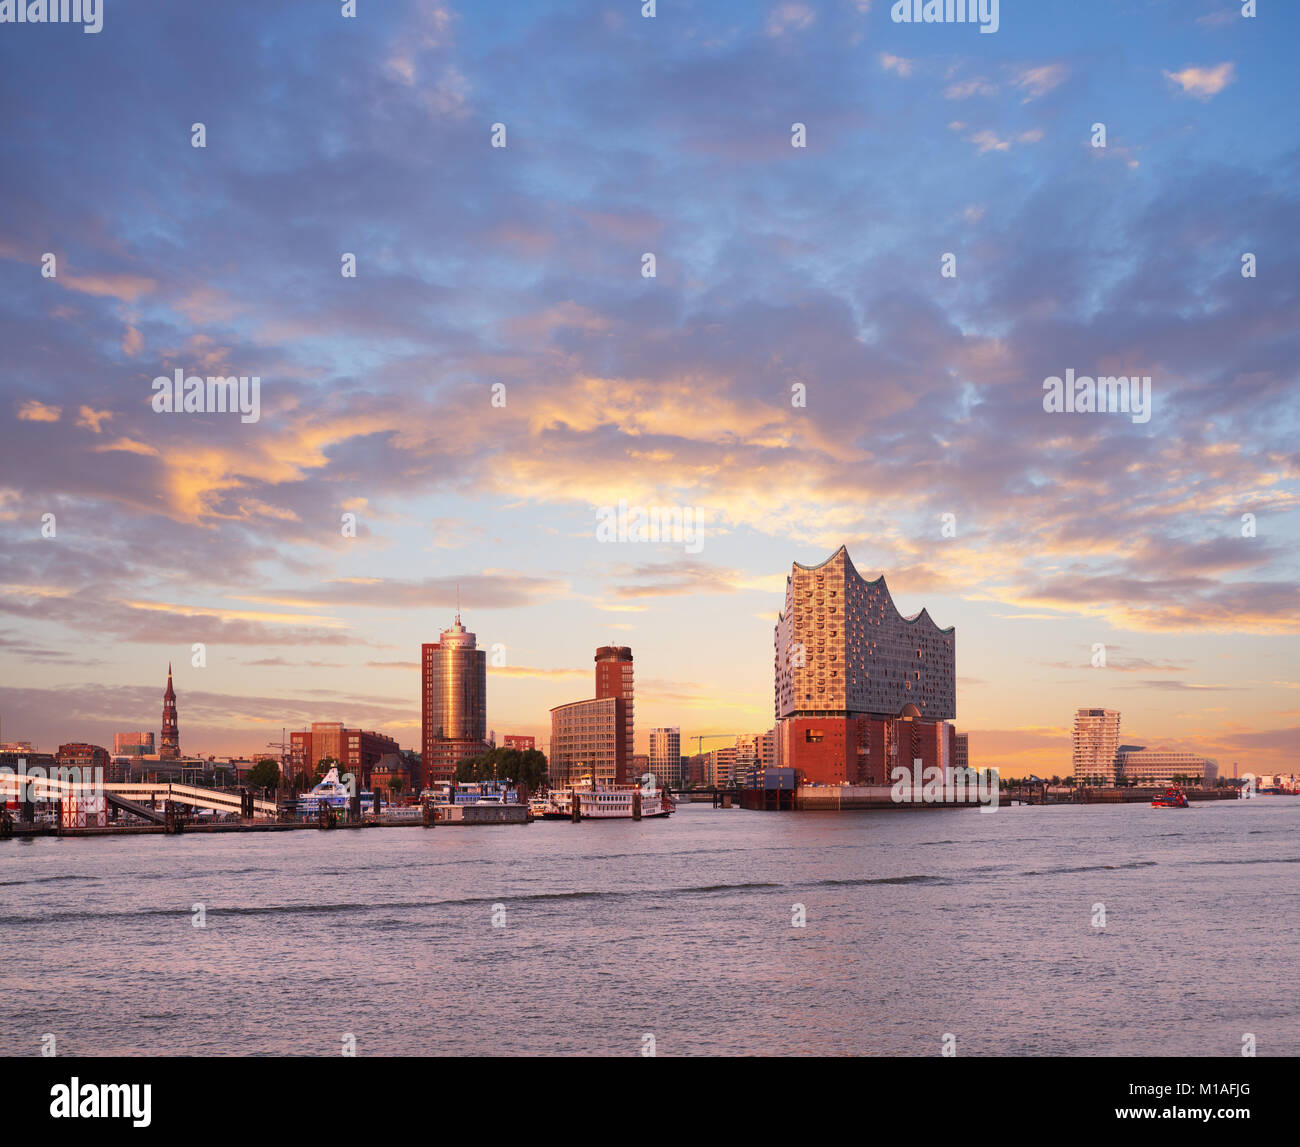 HANBURG, GERMANY- AUGUST 12, 2015: Hambirg, view on the Elbe river towards Elbphilharmonie, a concert hall in the - Stock Image